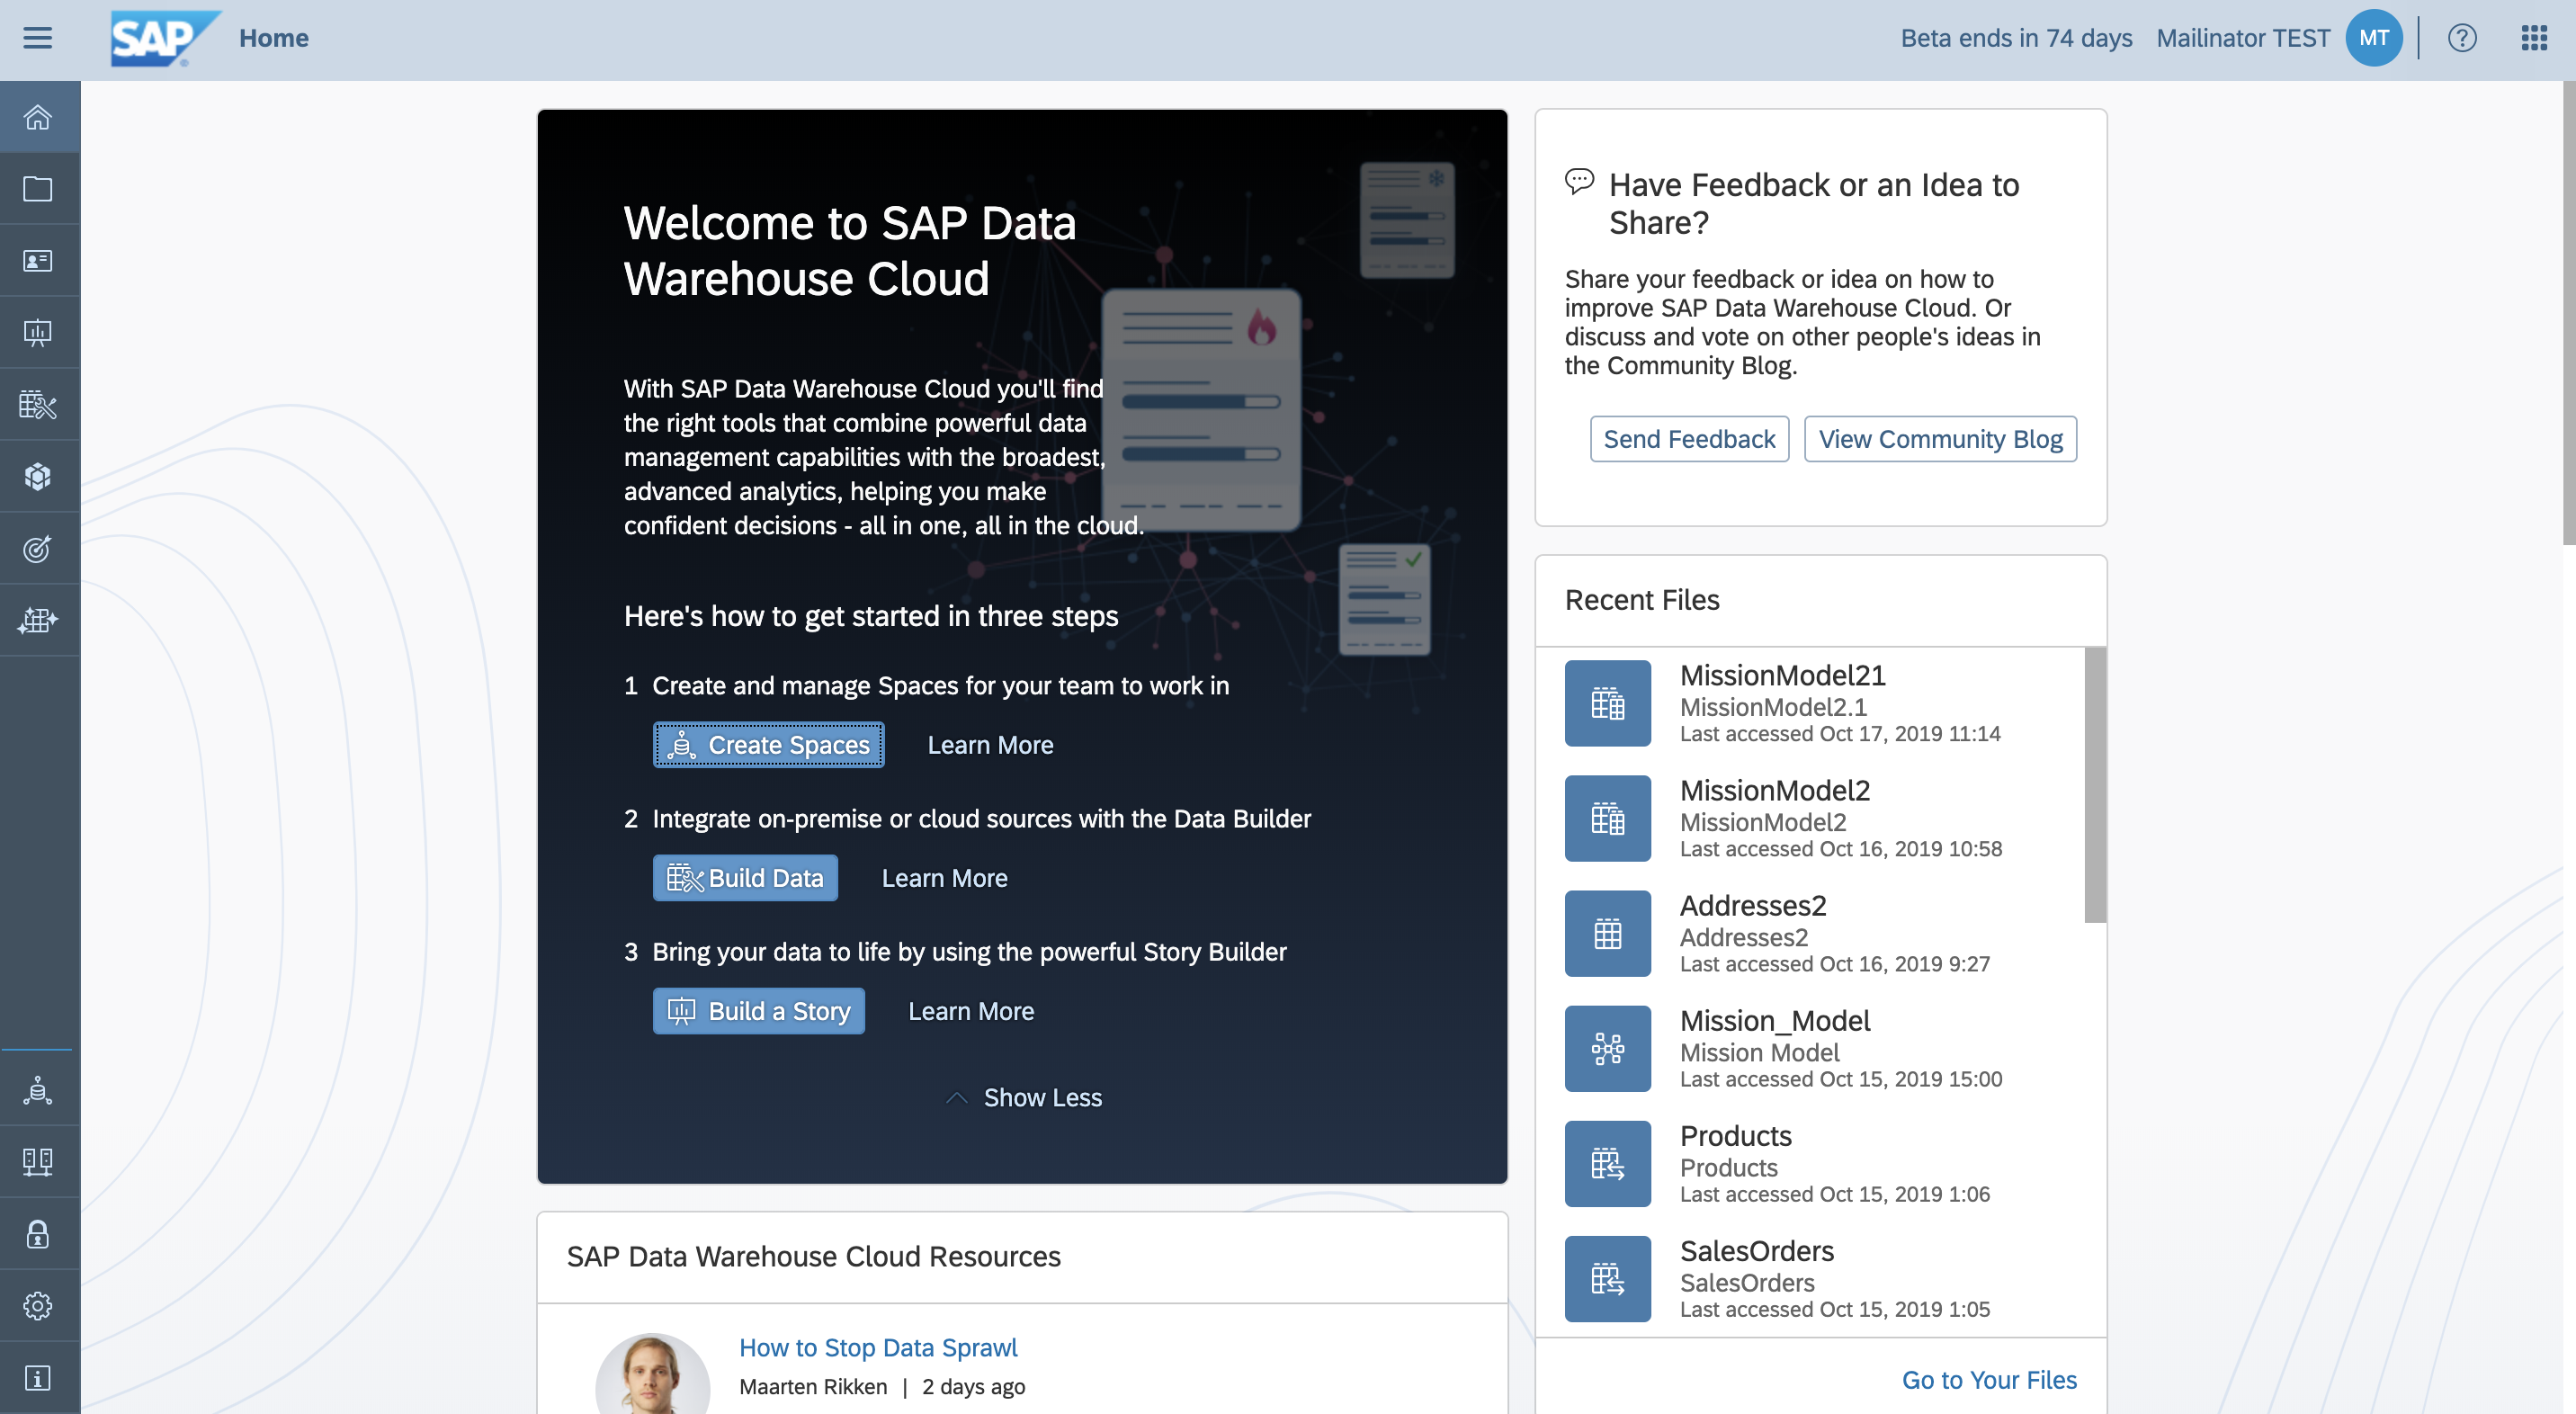 Source%20https%3A//saphanajourney.com/data-warehouse-cloud/learning-article/sap-data-warehouse-cloud-overview-and-architecture-2/